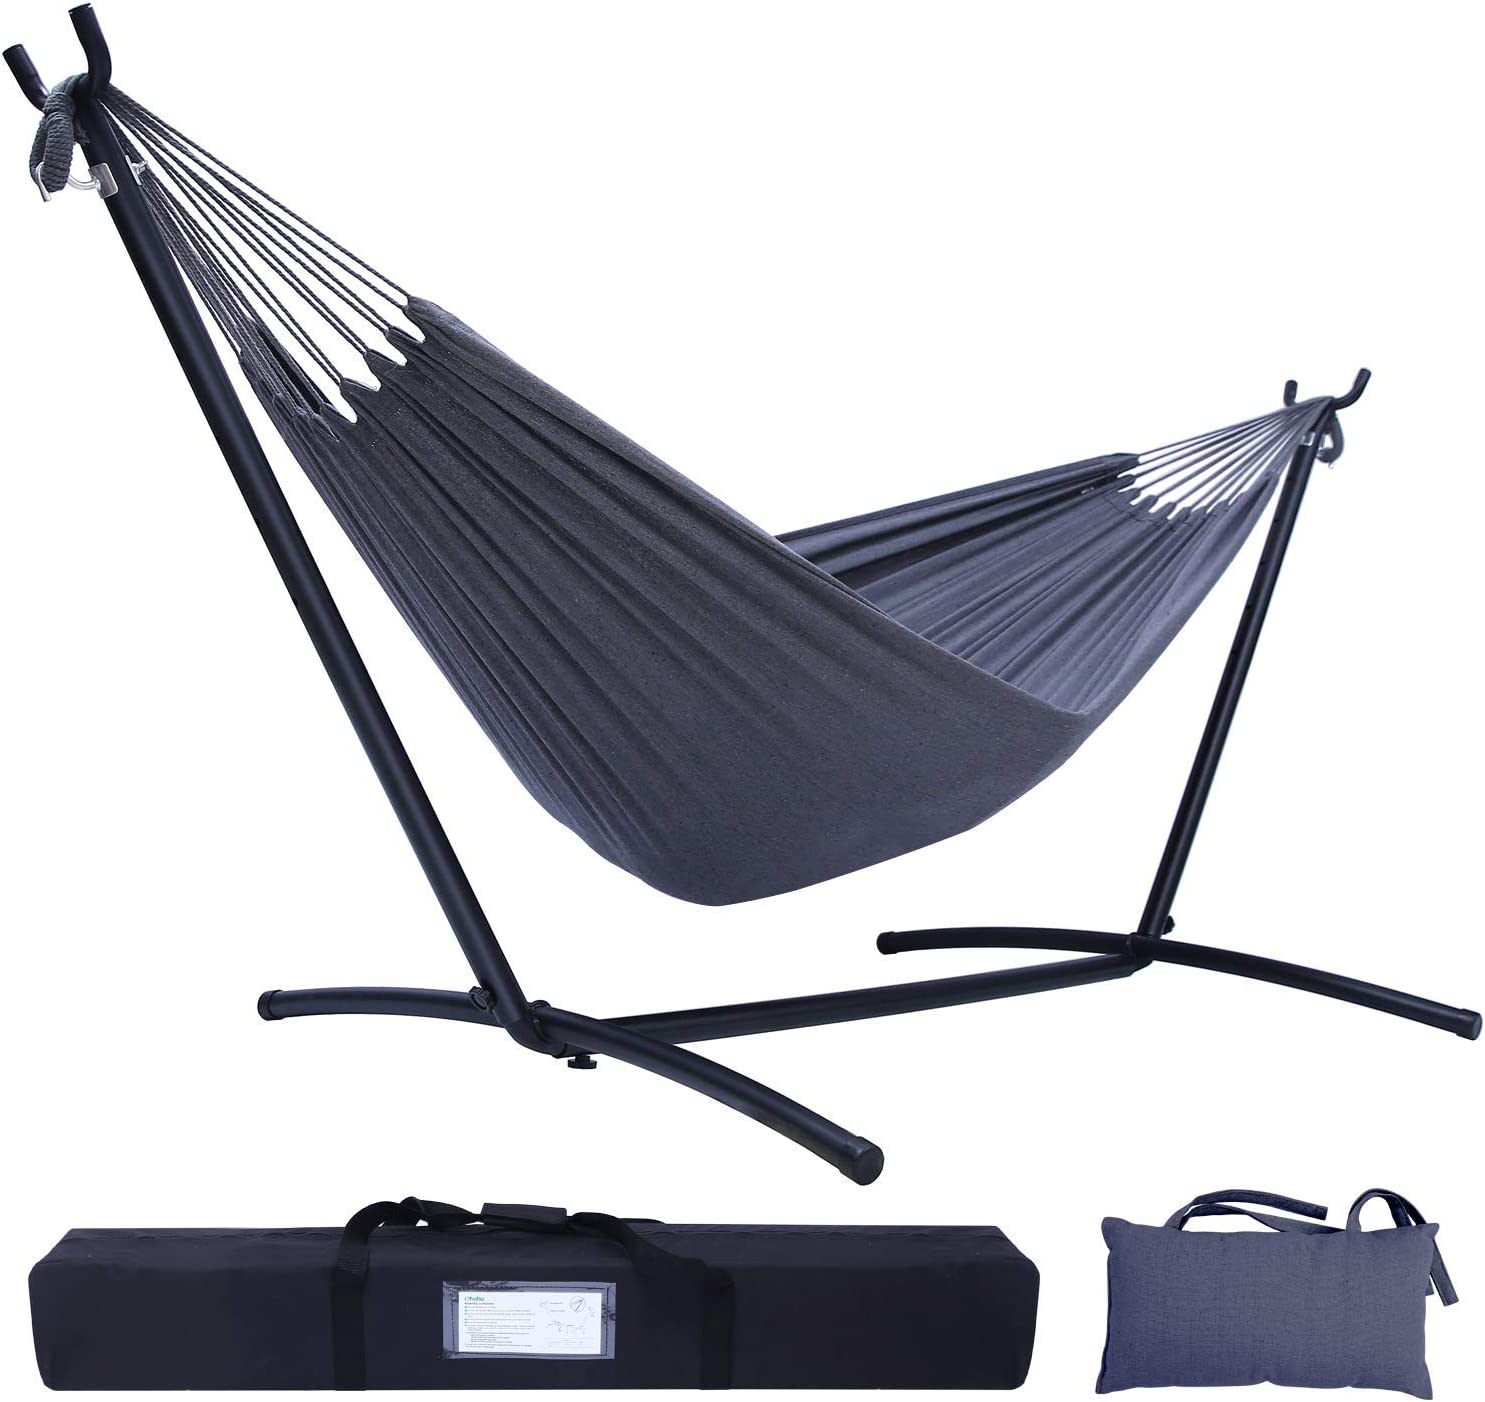 Hammock with Stand, Ohuhu Double Hammocks with Space Saving Steel Stand & Pillow, 2-Person Hammock with Portable Carrying Bag for Indoor Outdoor Garden Yard Porch Patio, 450 lb Capacity